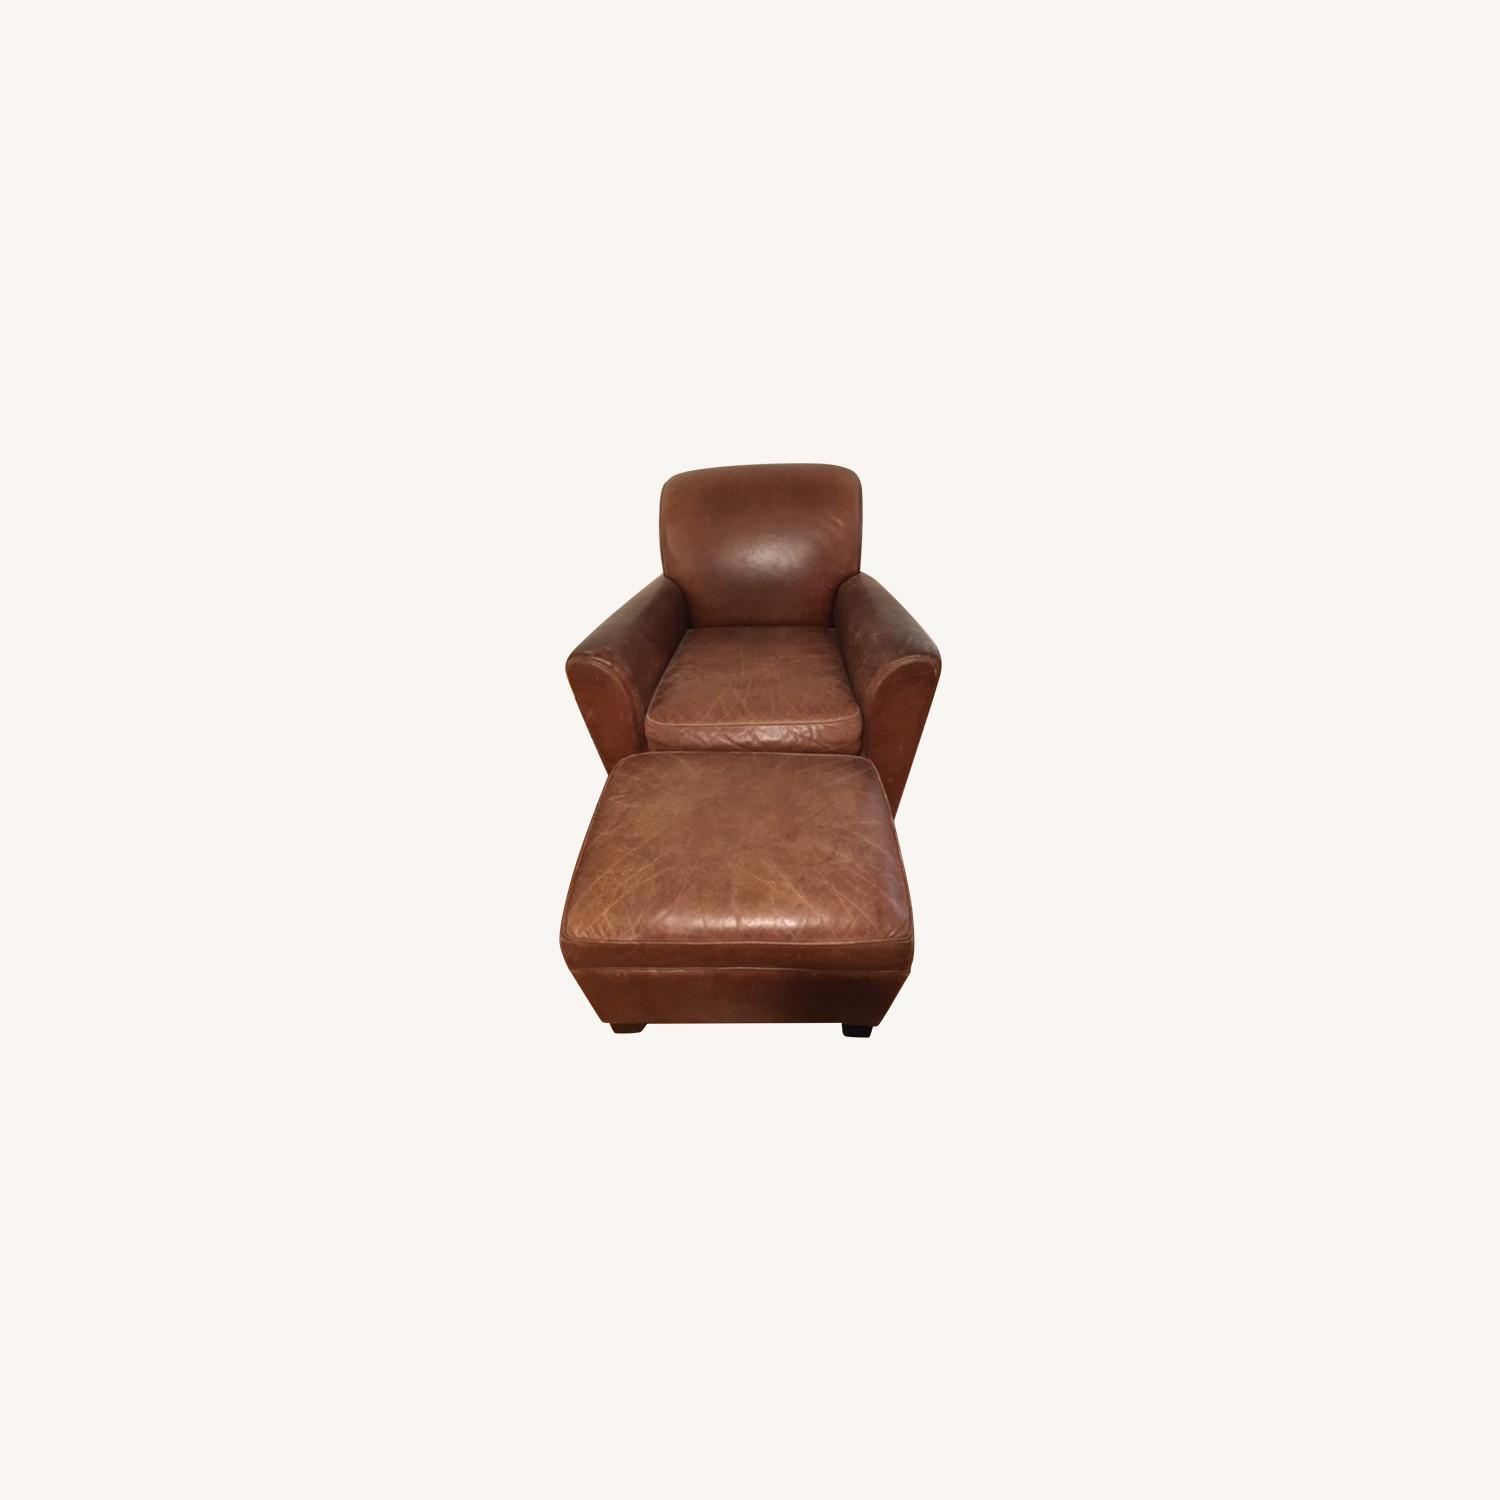 Pottery Barn Vintage Leather Club Chair and Ottoman - image-0